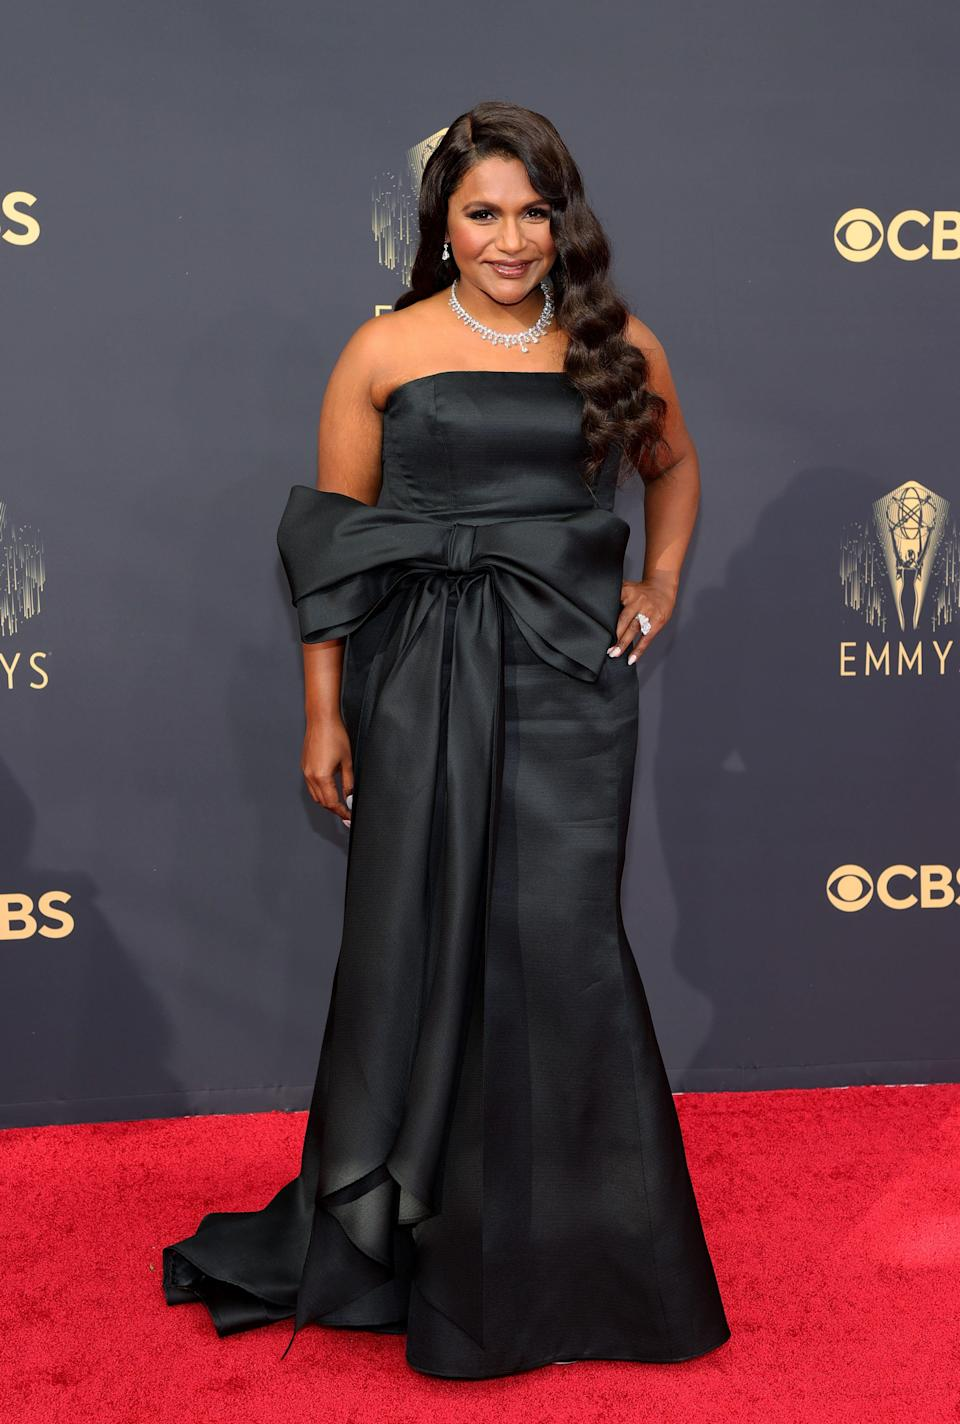 Mindy Kaling attends the 2021 Emmys.